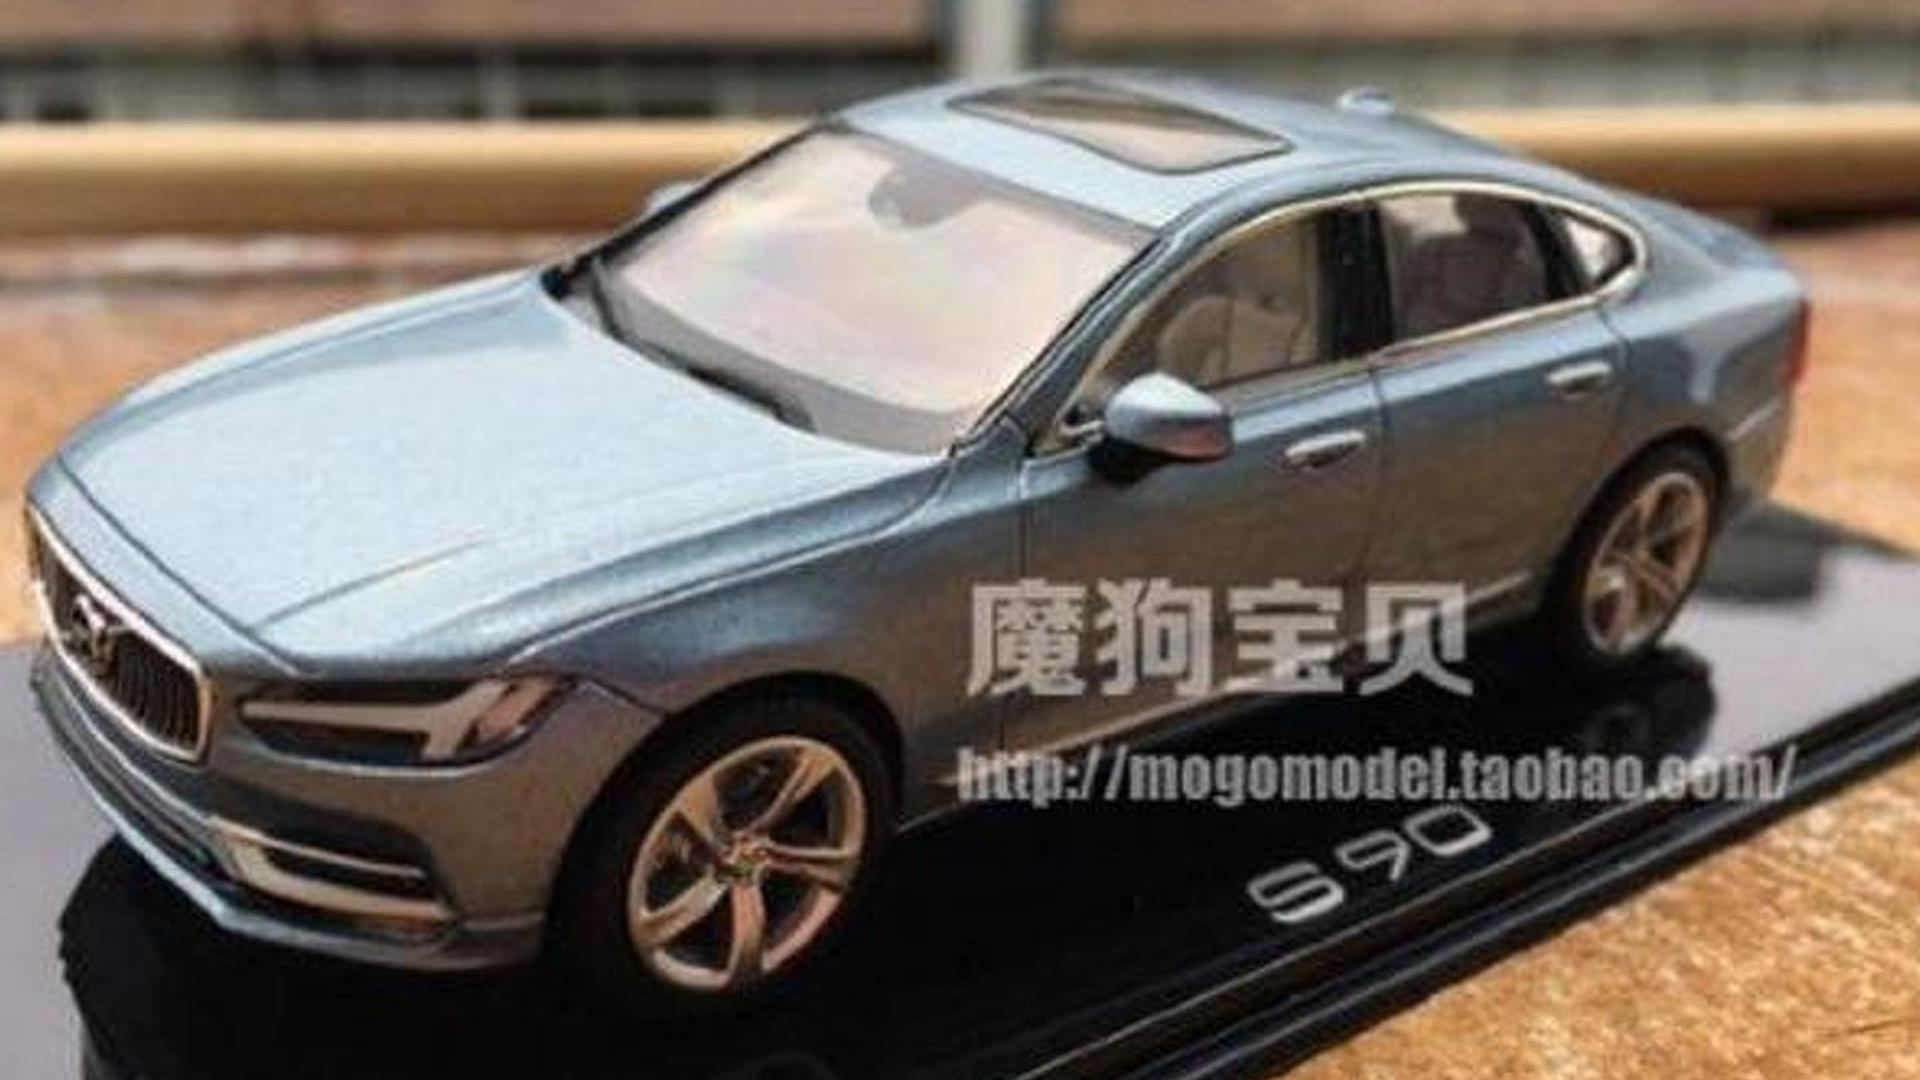 Volvo S90 leaks out thanks to scale model